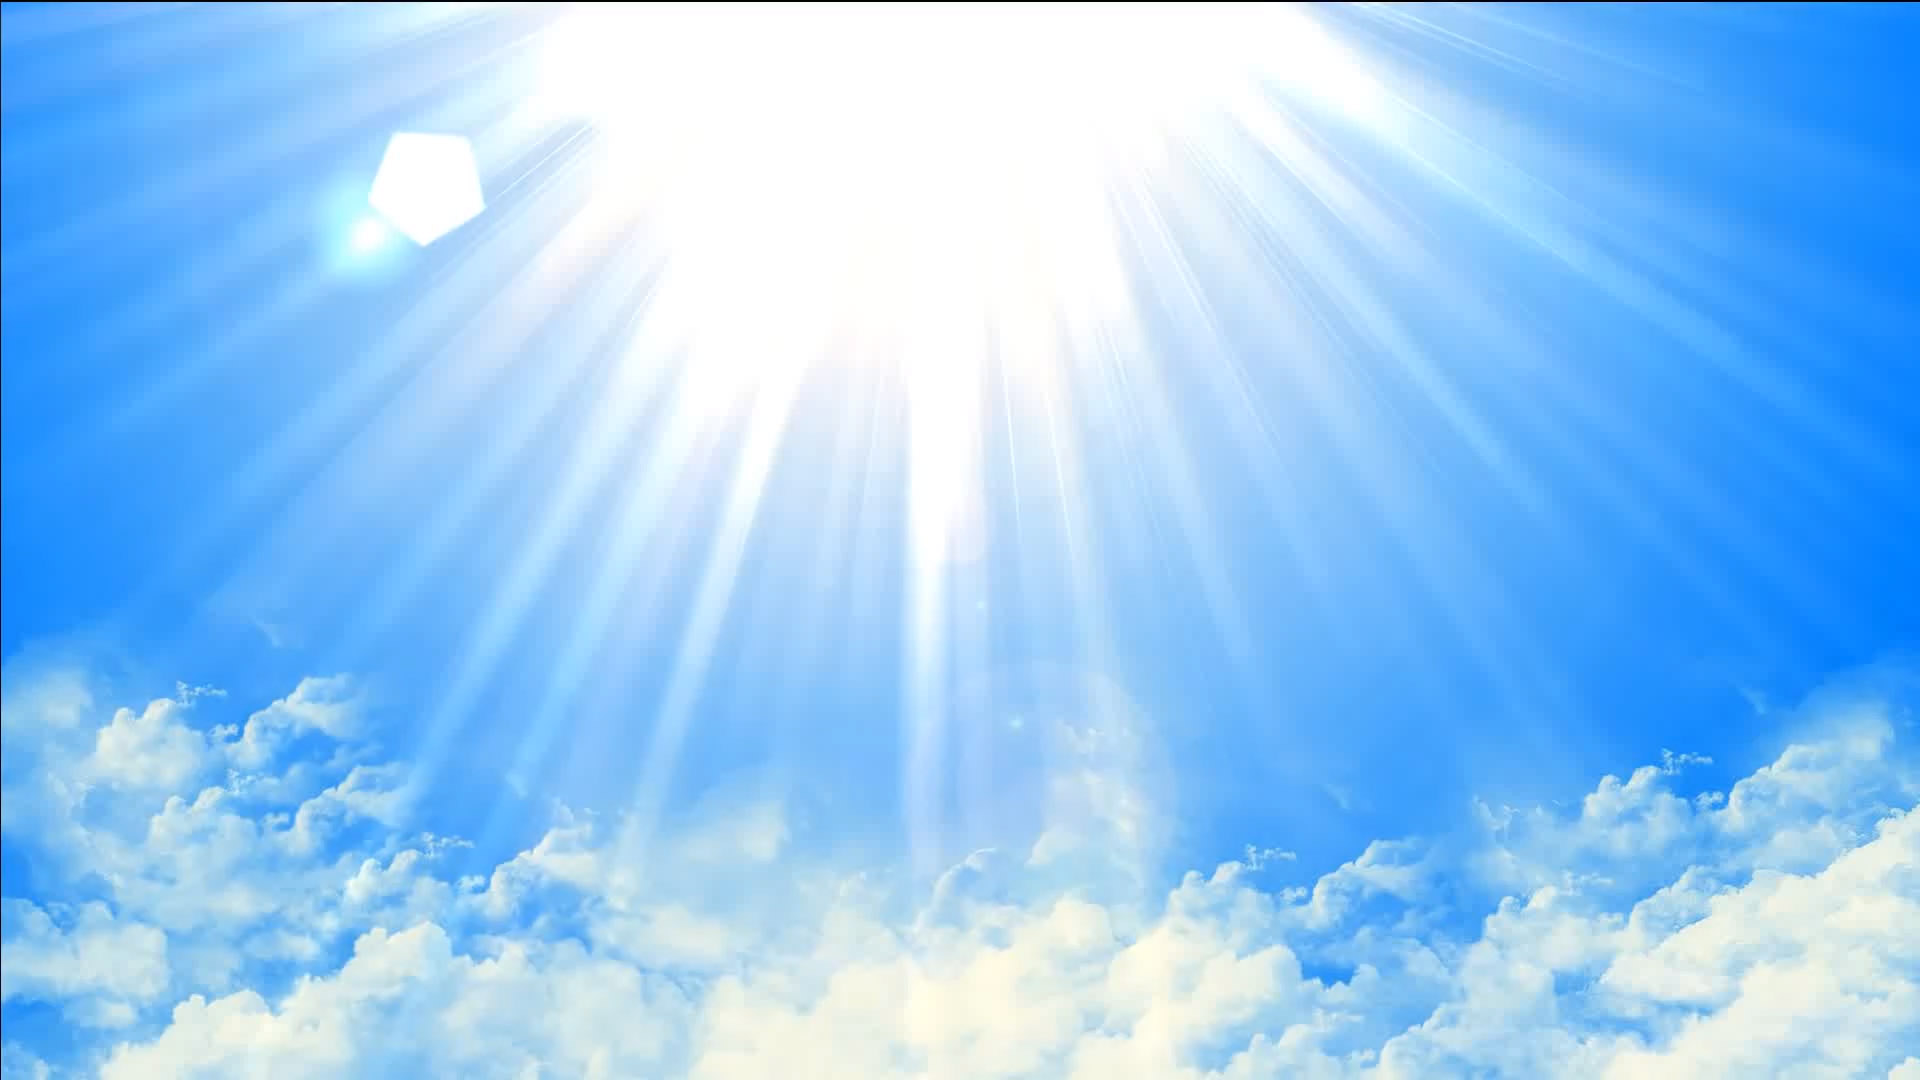 Purchase Animated Sun Shining Light on blue sky background.